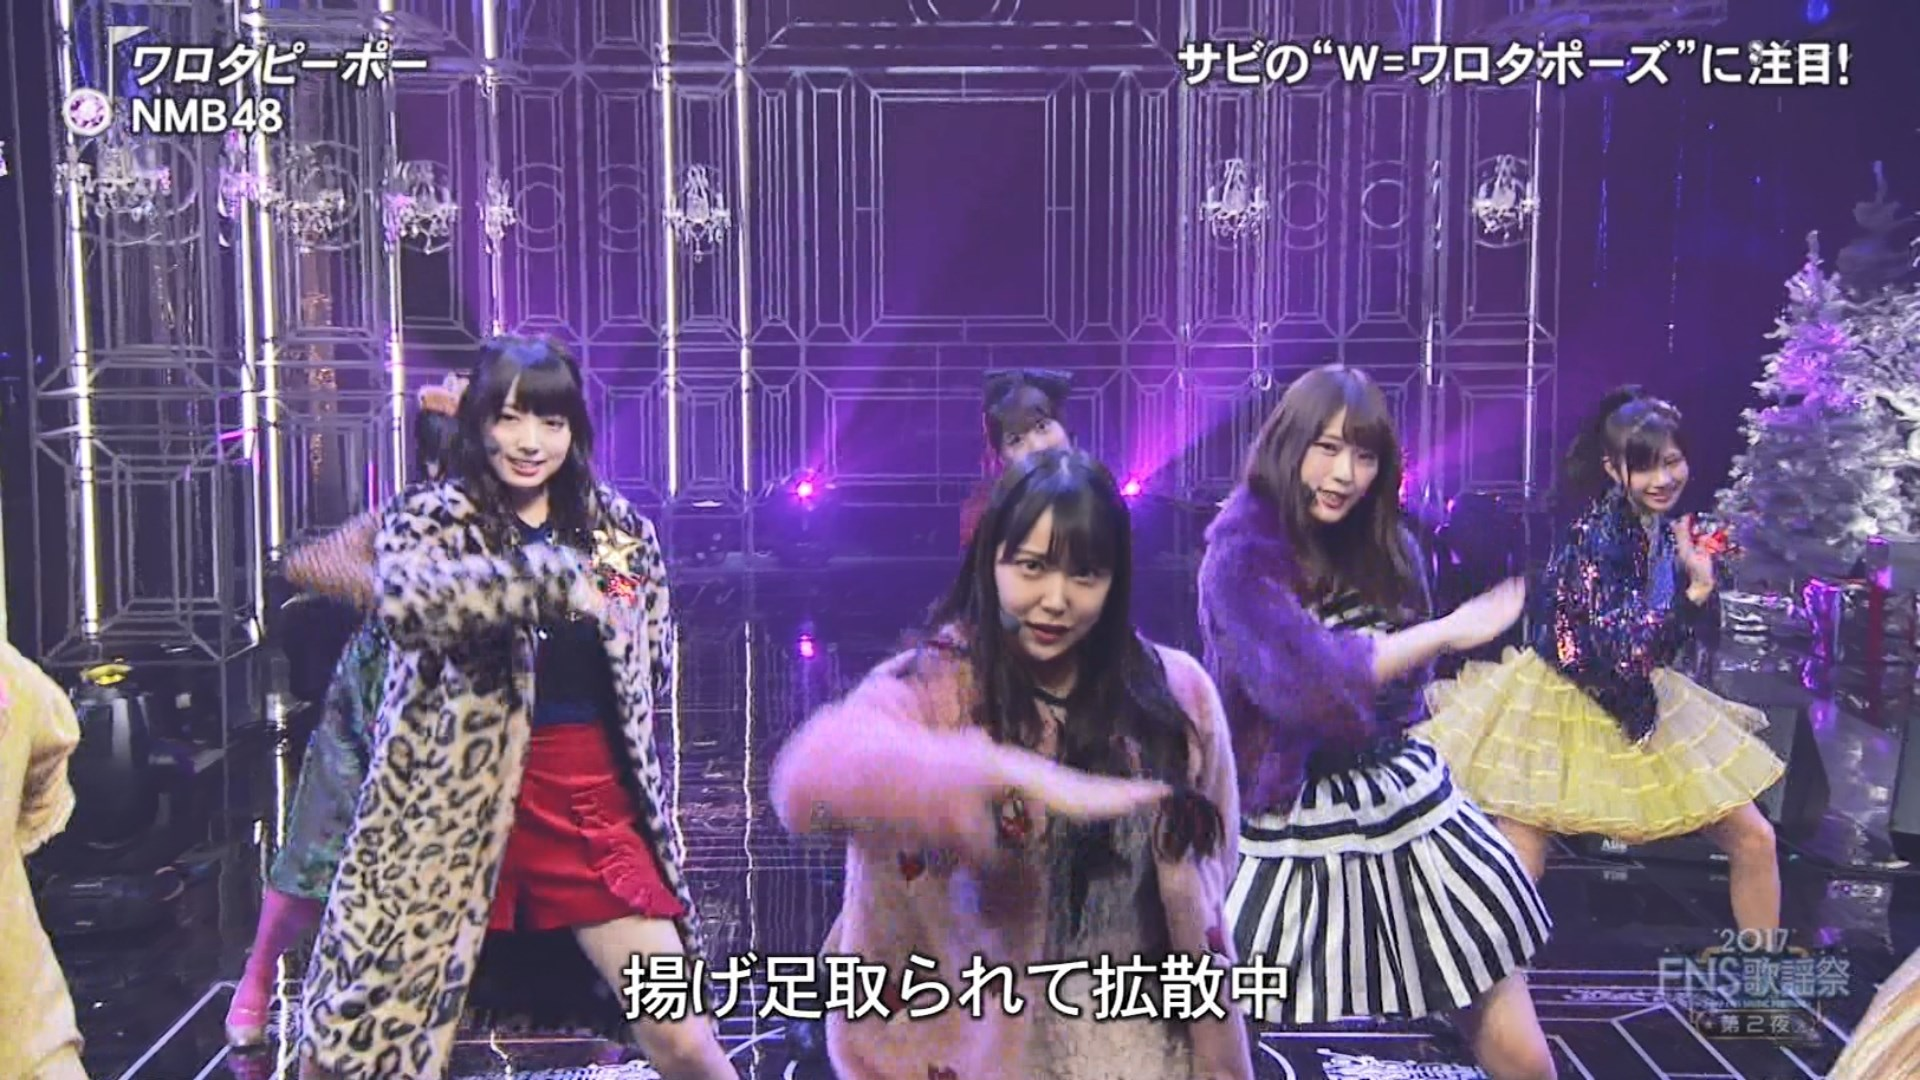 2017FNS歌謡祭第2夜・NMB48ワロタピーポーキャプ-015